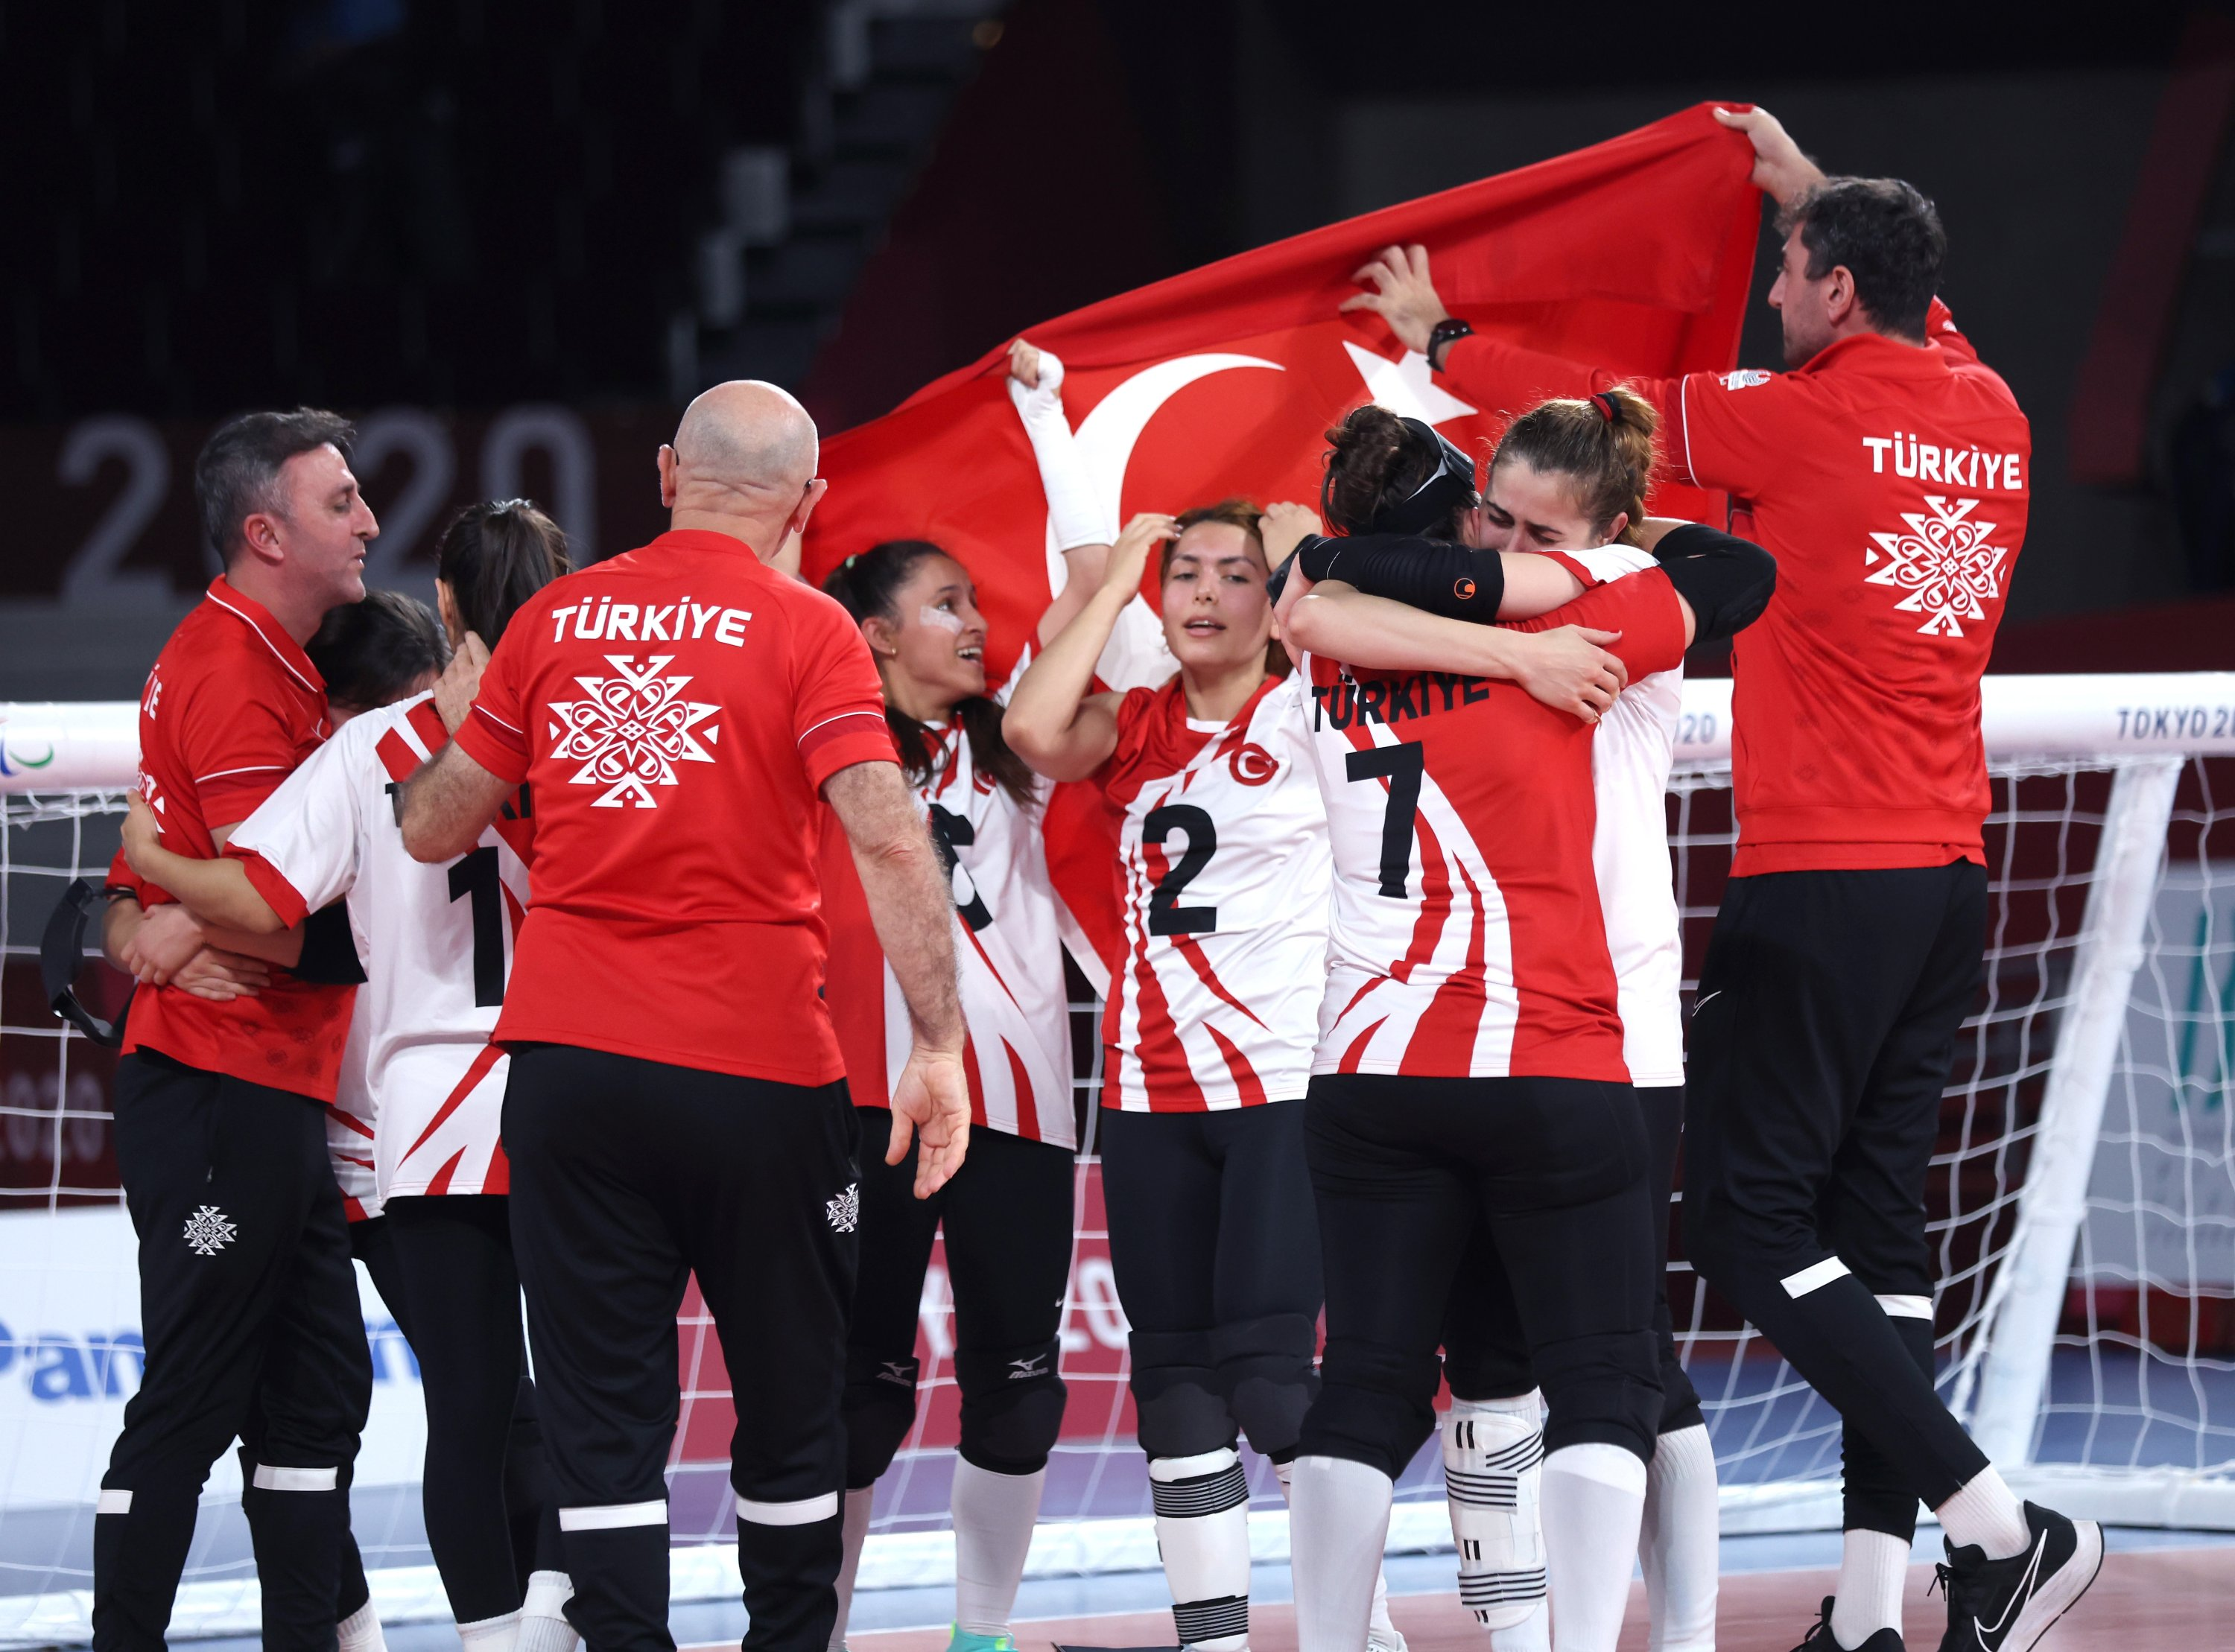 Team Turkey celebrates after defeating Team USA in the women's in the Tokyo Paralympic goalball final at Makuhari Messe Hall, in Chiba, Japan, Sept. 3, 2021. (Getty Images)